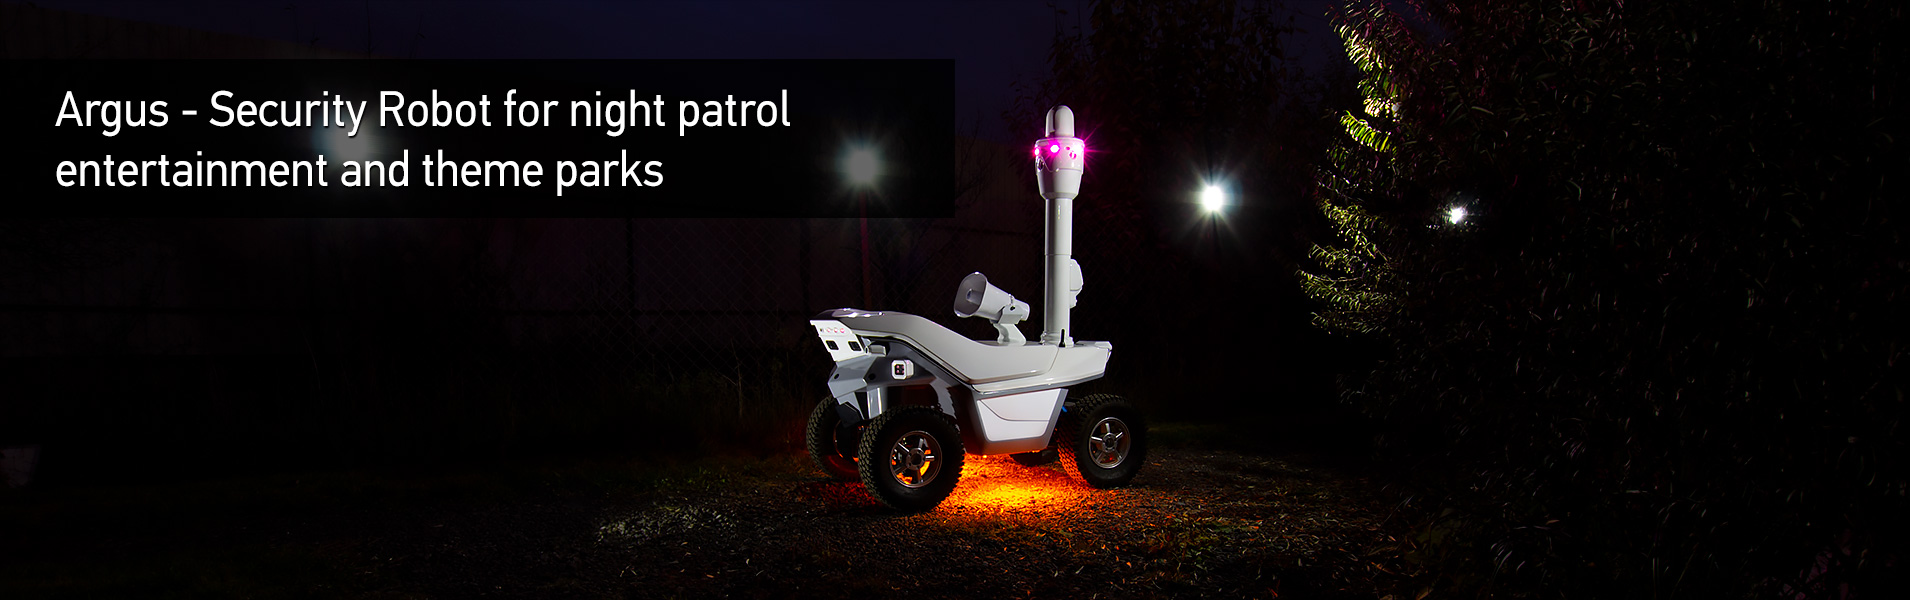 Argus - Security Robot for night patrol entertainment and theme parks